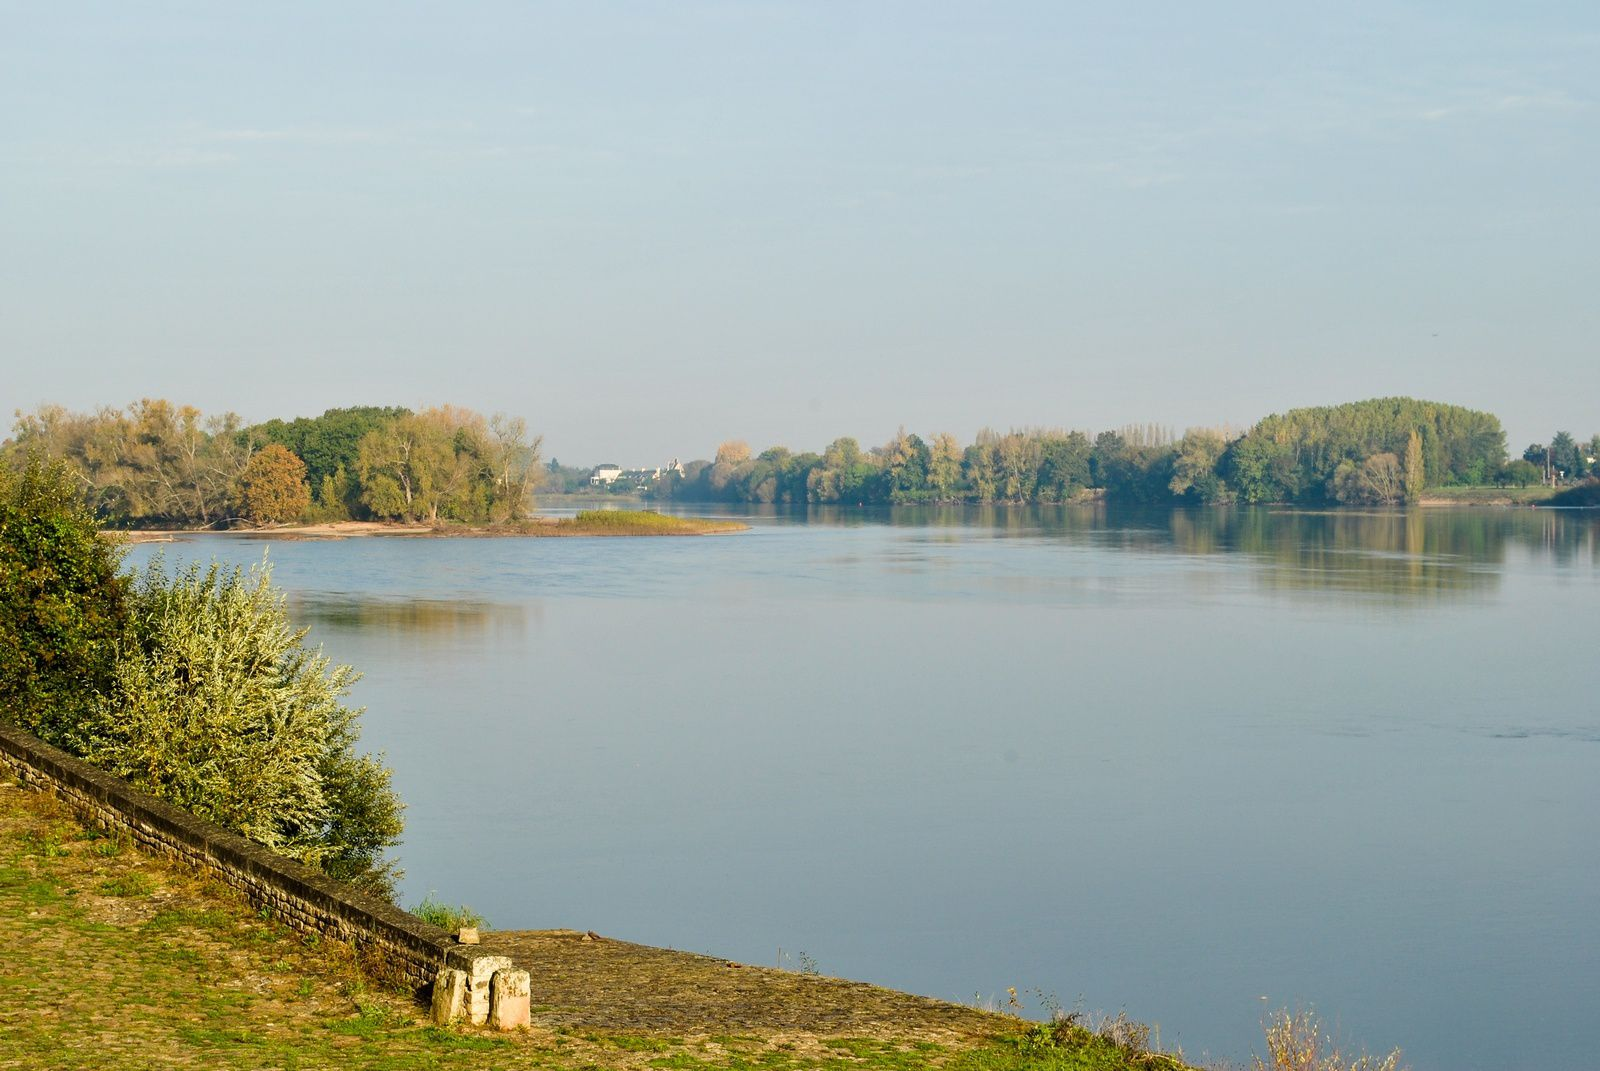 Bord de Loire: (Photo prise le 29.10.2014)